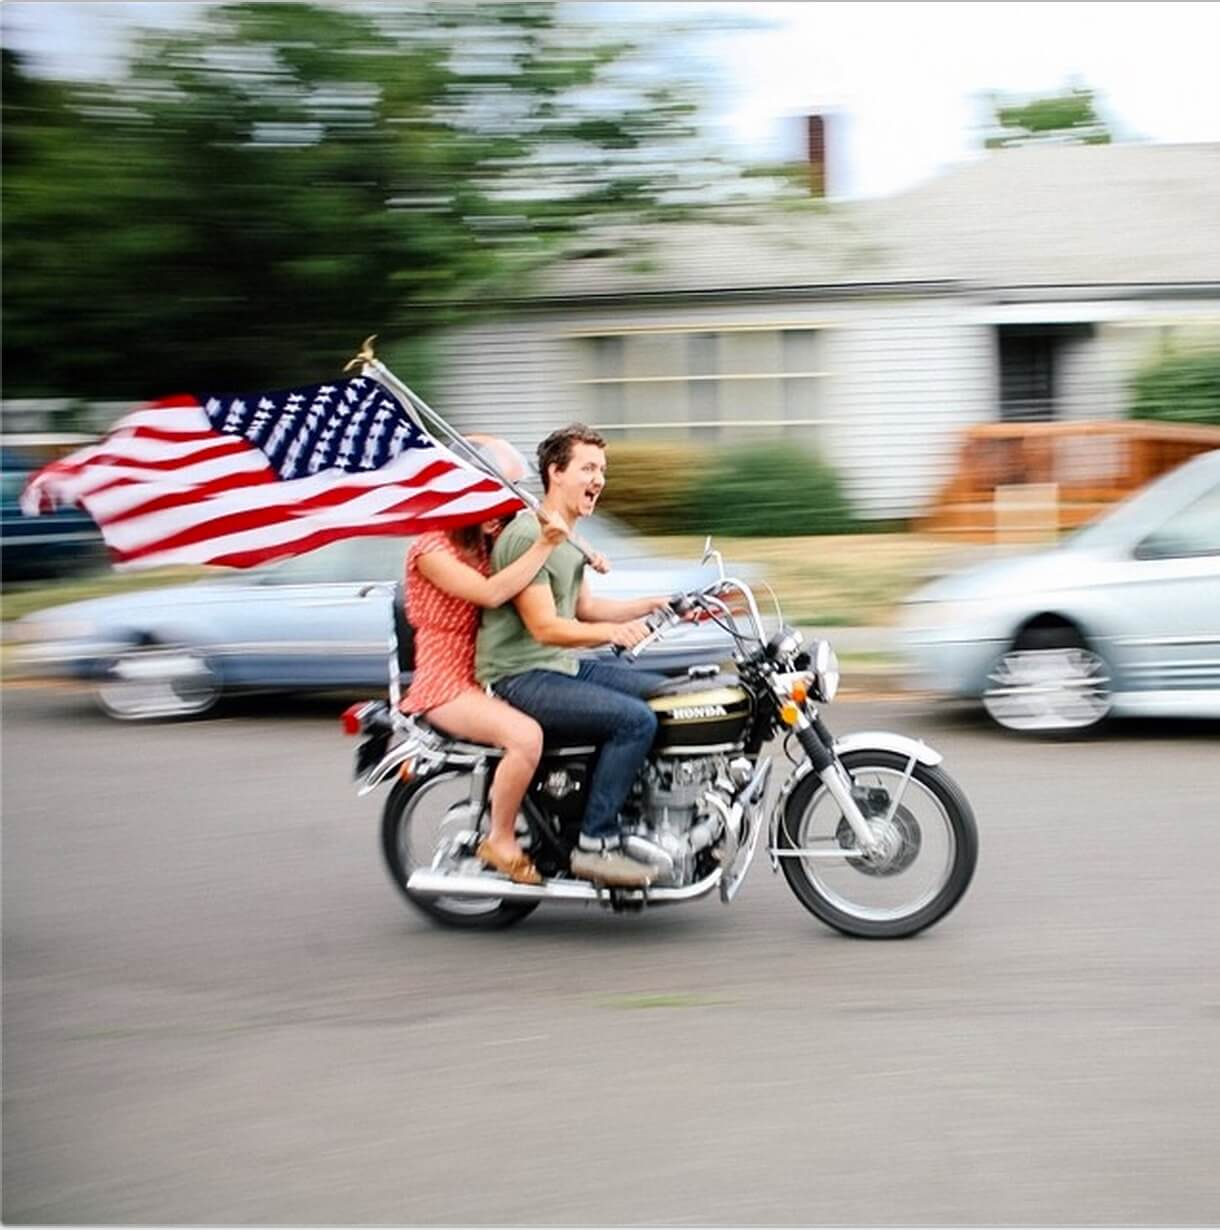 Motion blur photo of couple riding motorcycle holding USA flag